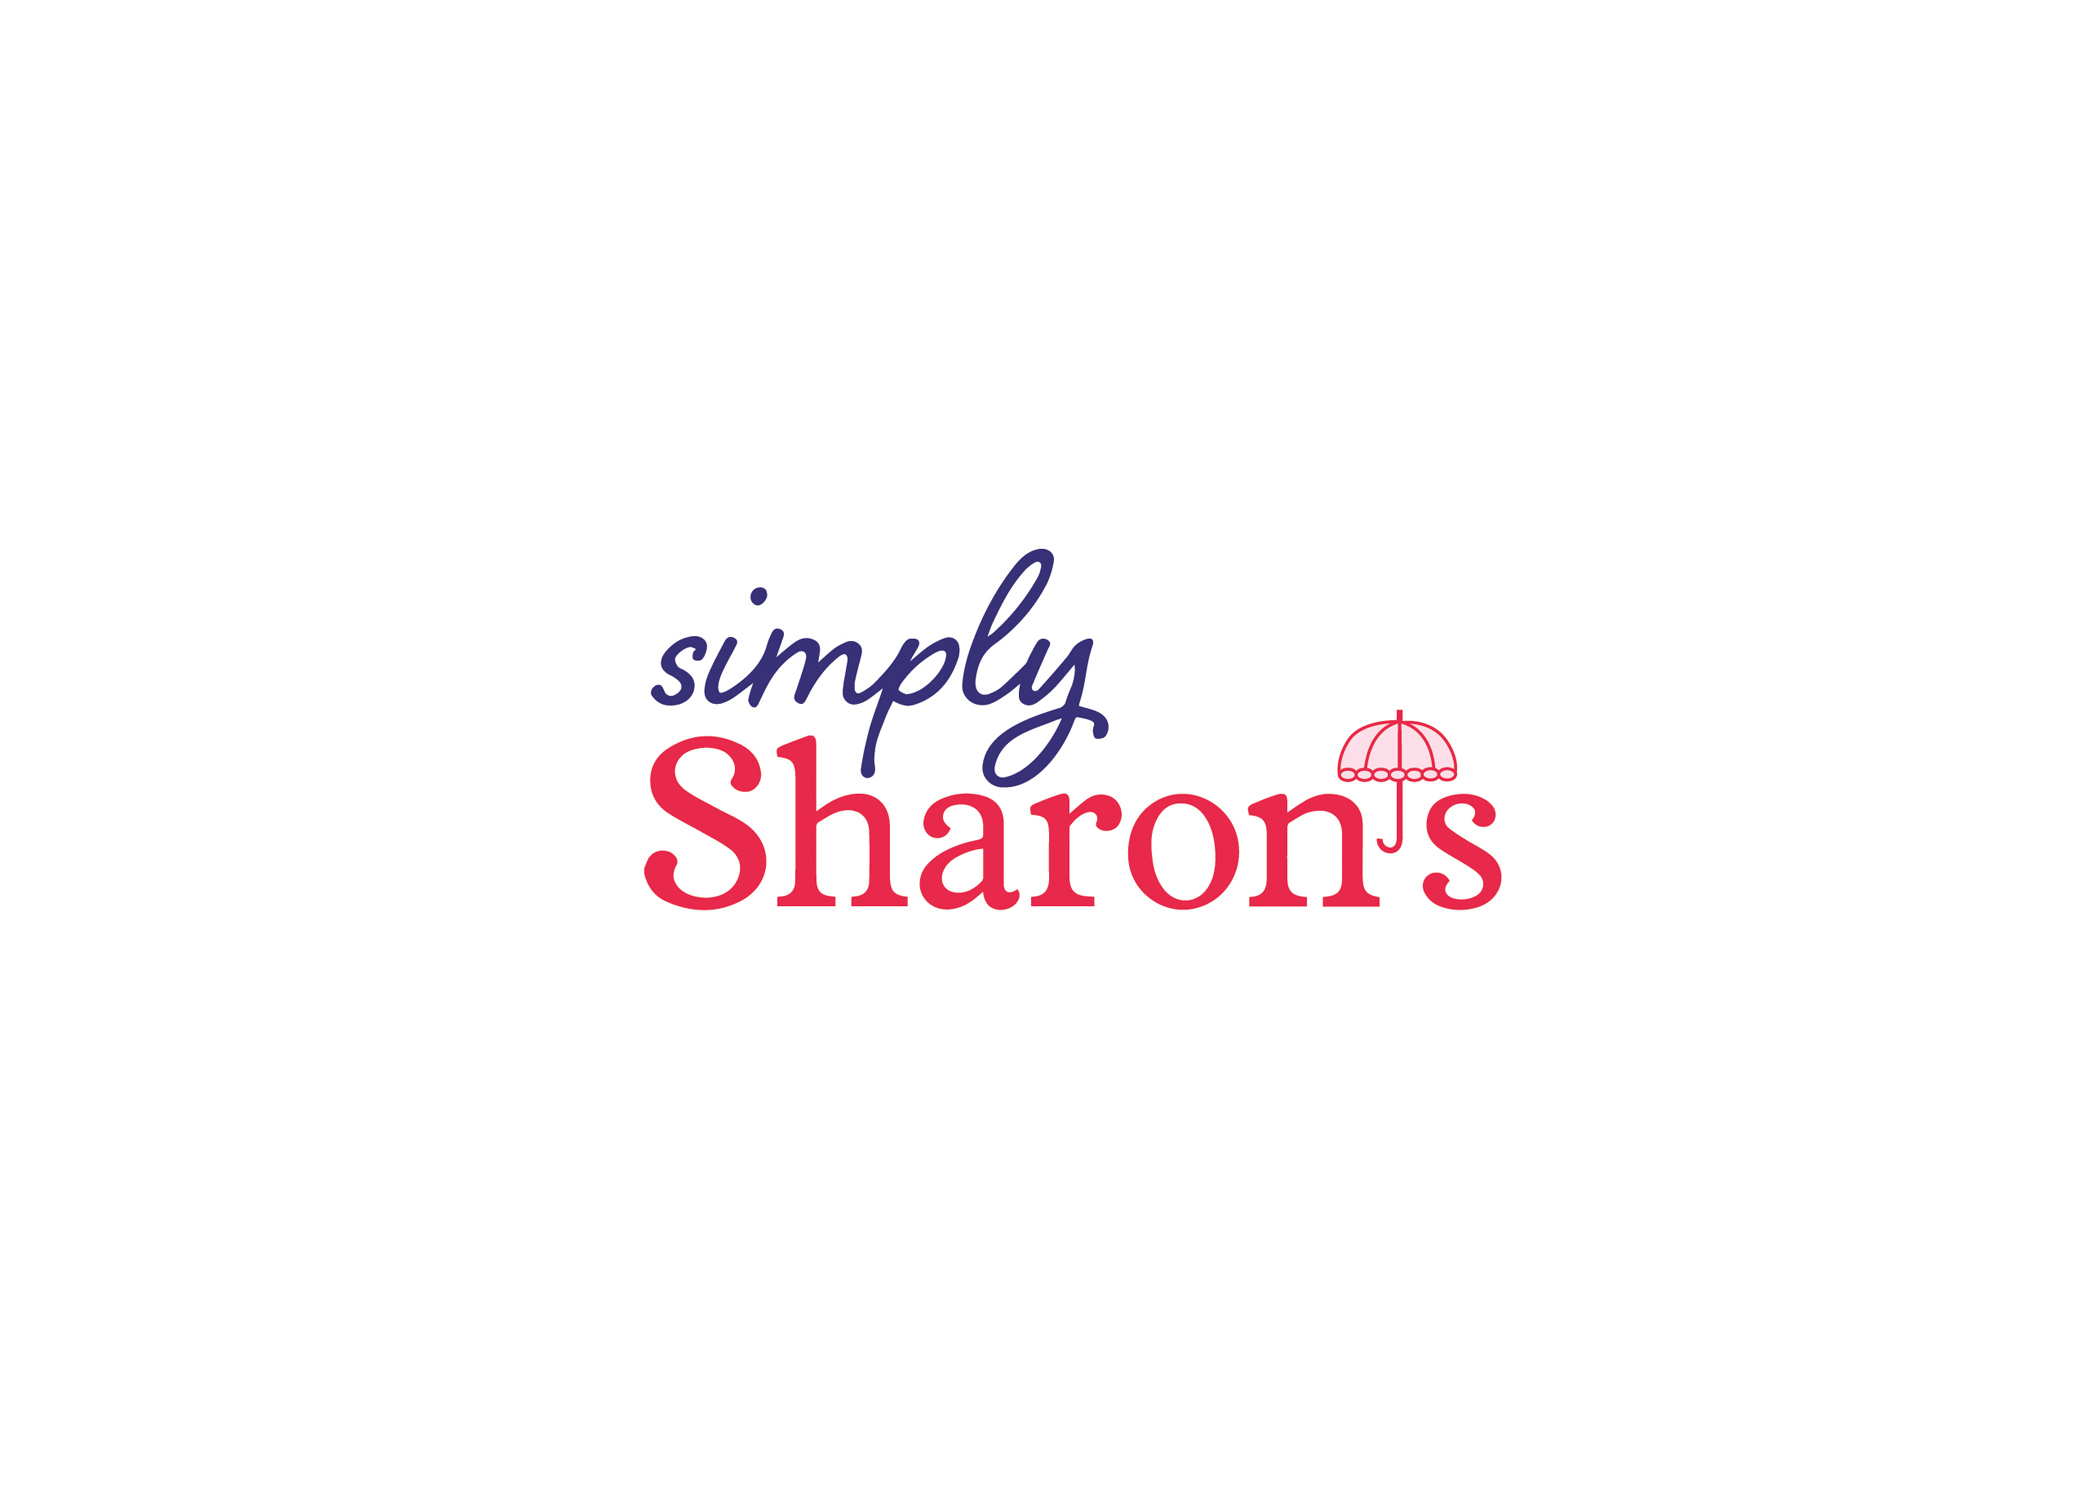 Simply Sharon's logo for cookie package design in purple script and red decorative fonts with parasol symbol as the apostrophe.